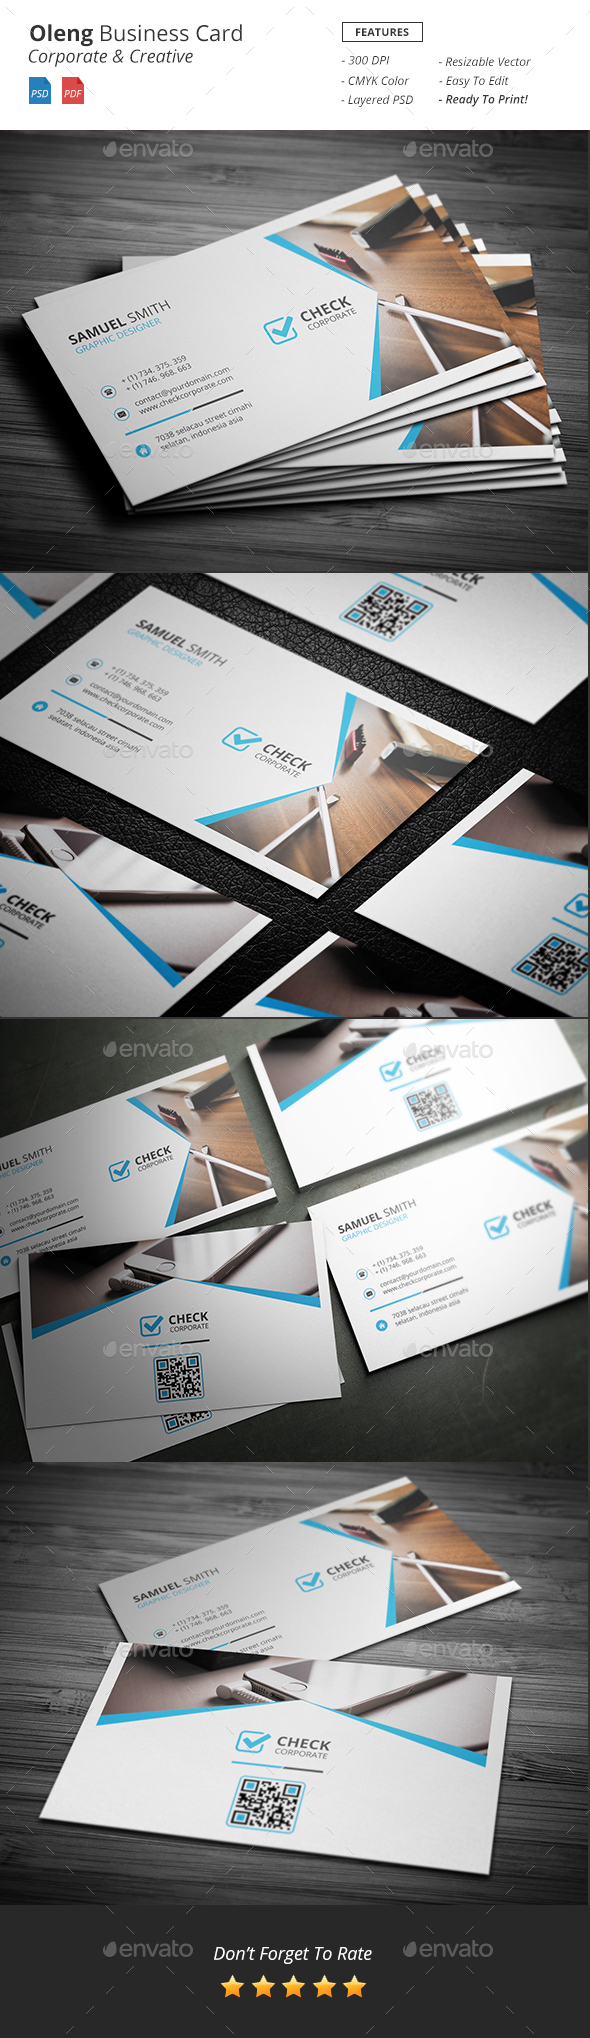 Oleng - Business Card - Corporate Business Cards